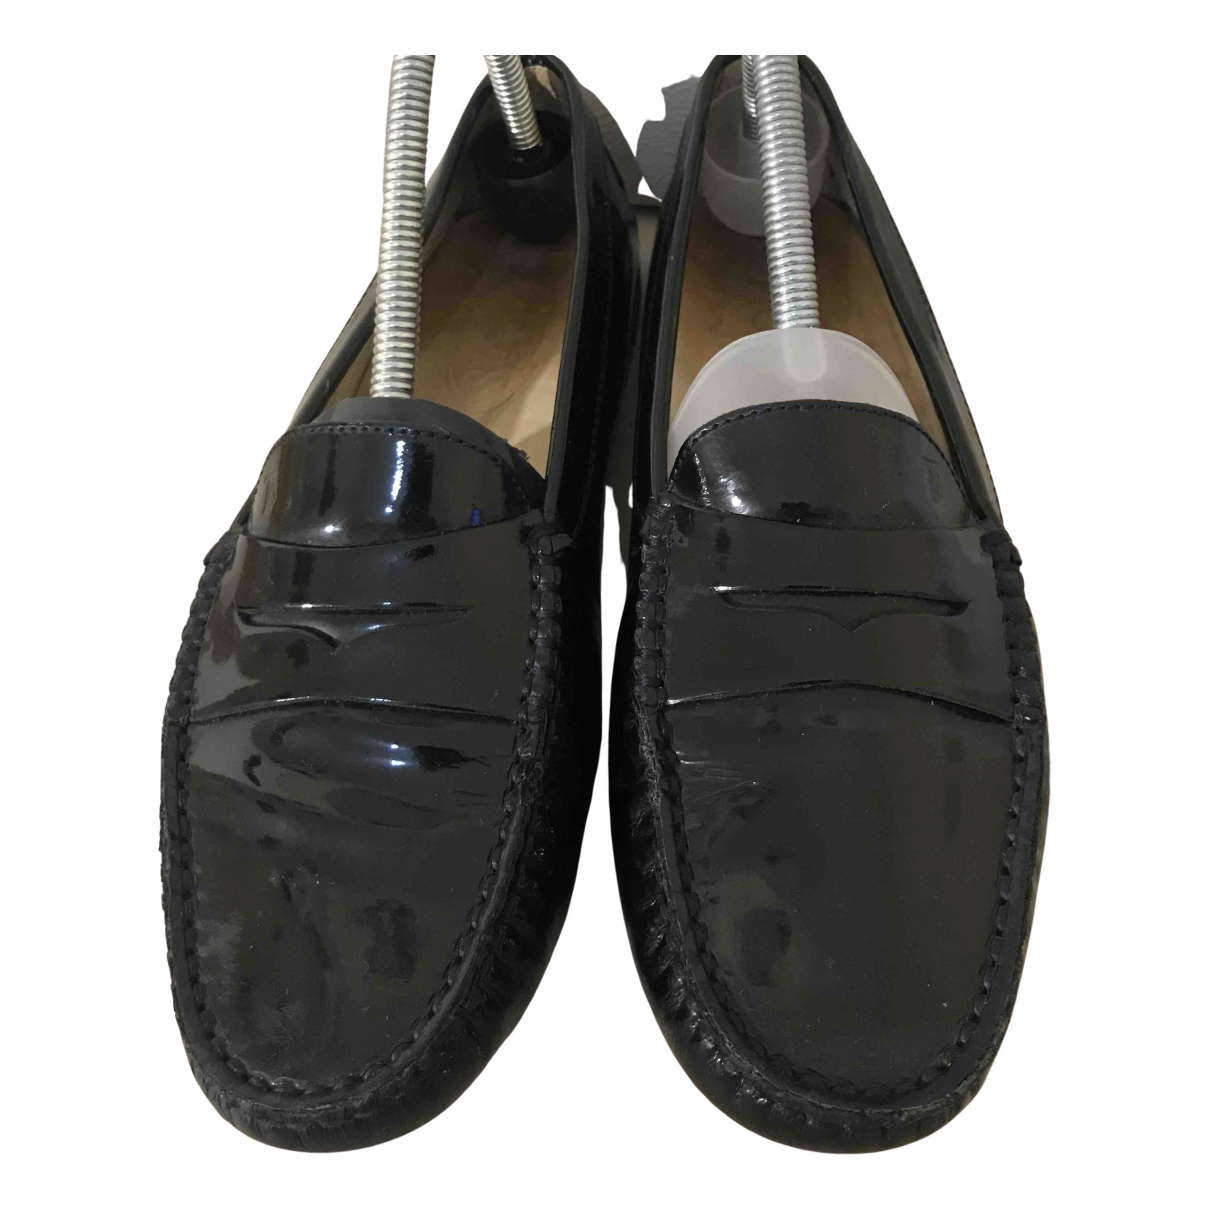 Tod's N Black Patent leather Flats for Women 40 EU